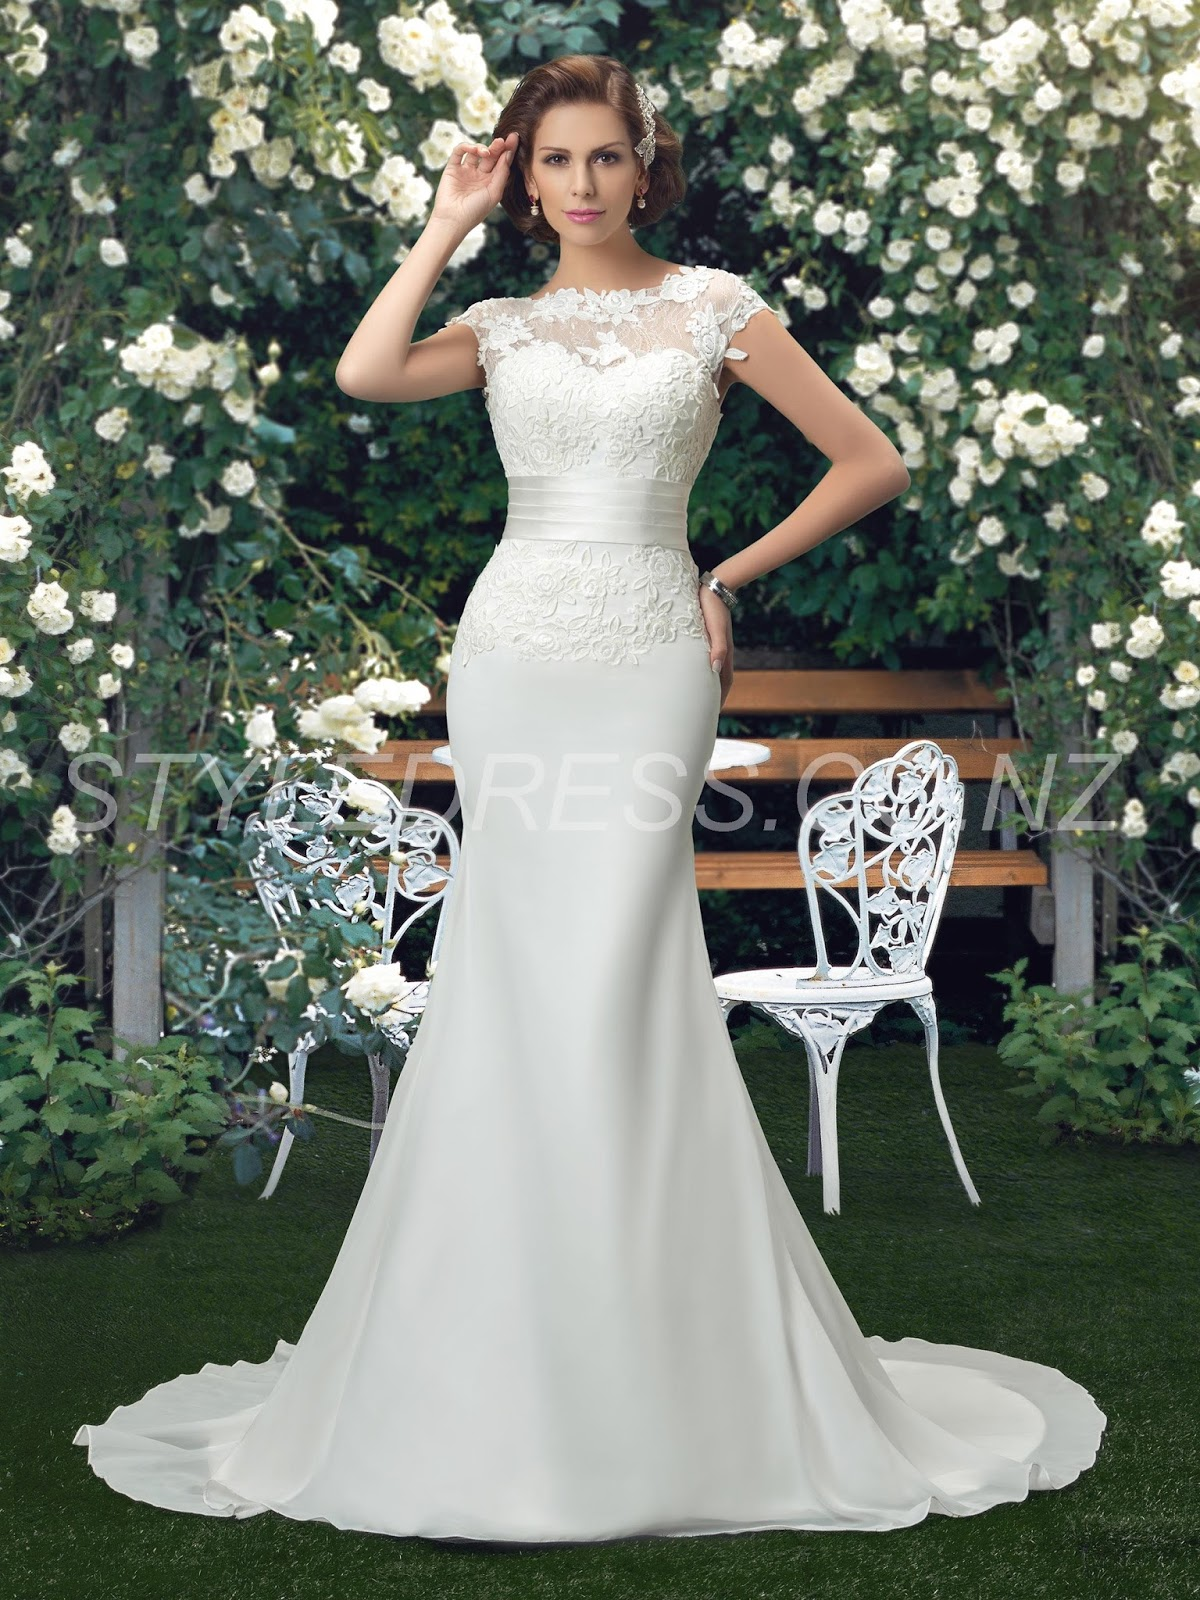 Bridal Gowns How To Find The Perfect Wedding Dress Tessy Onyias